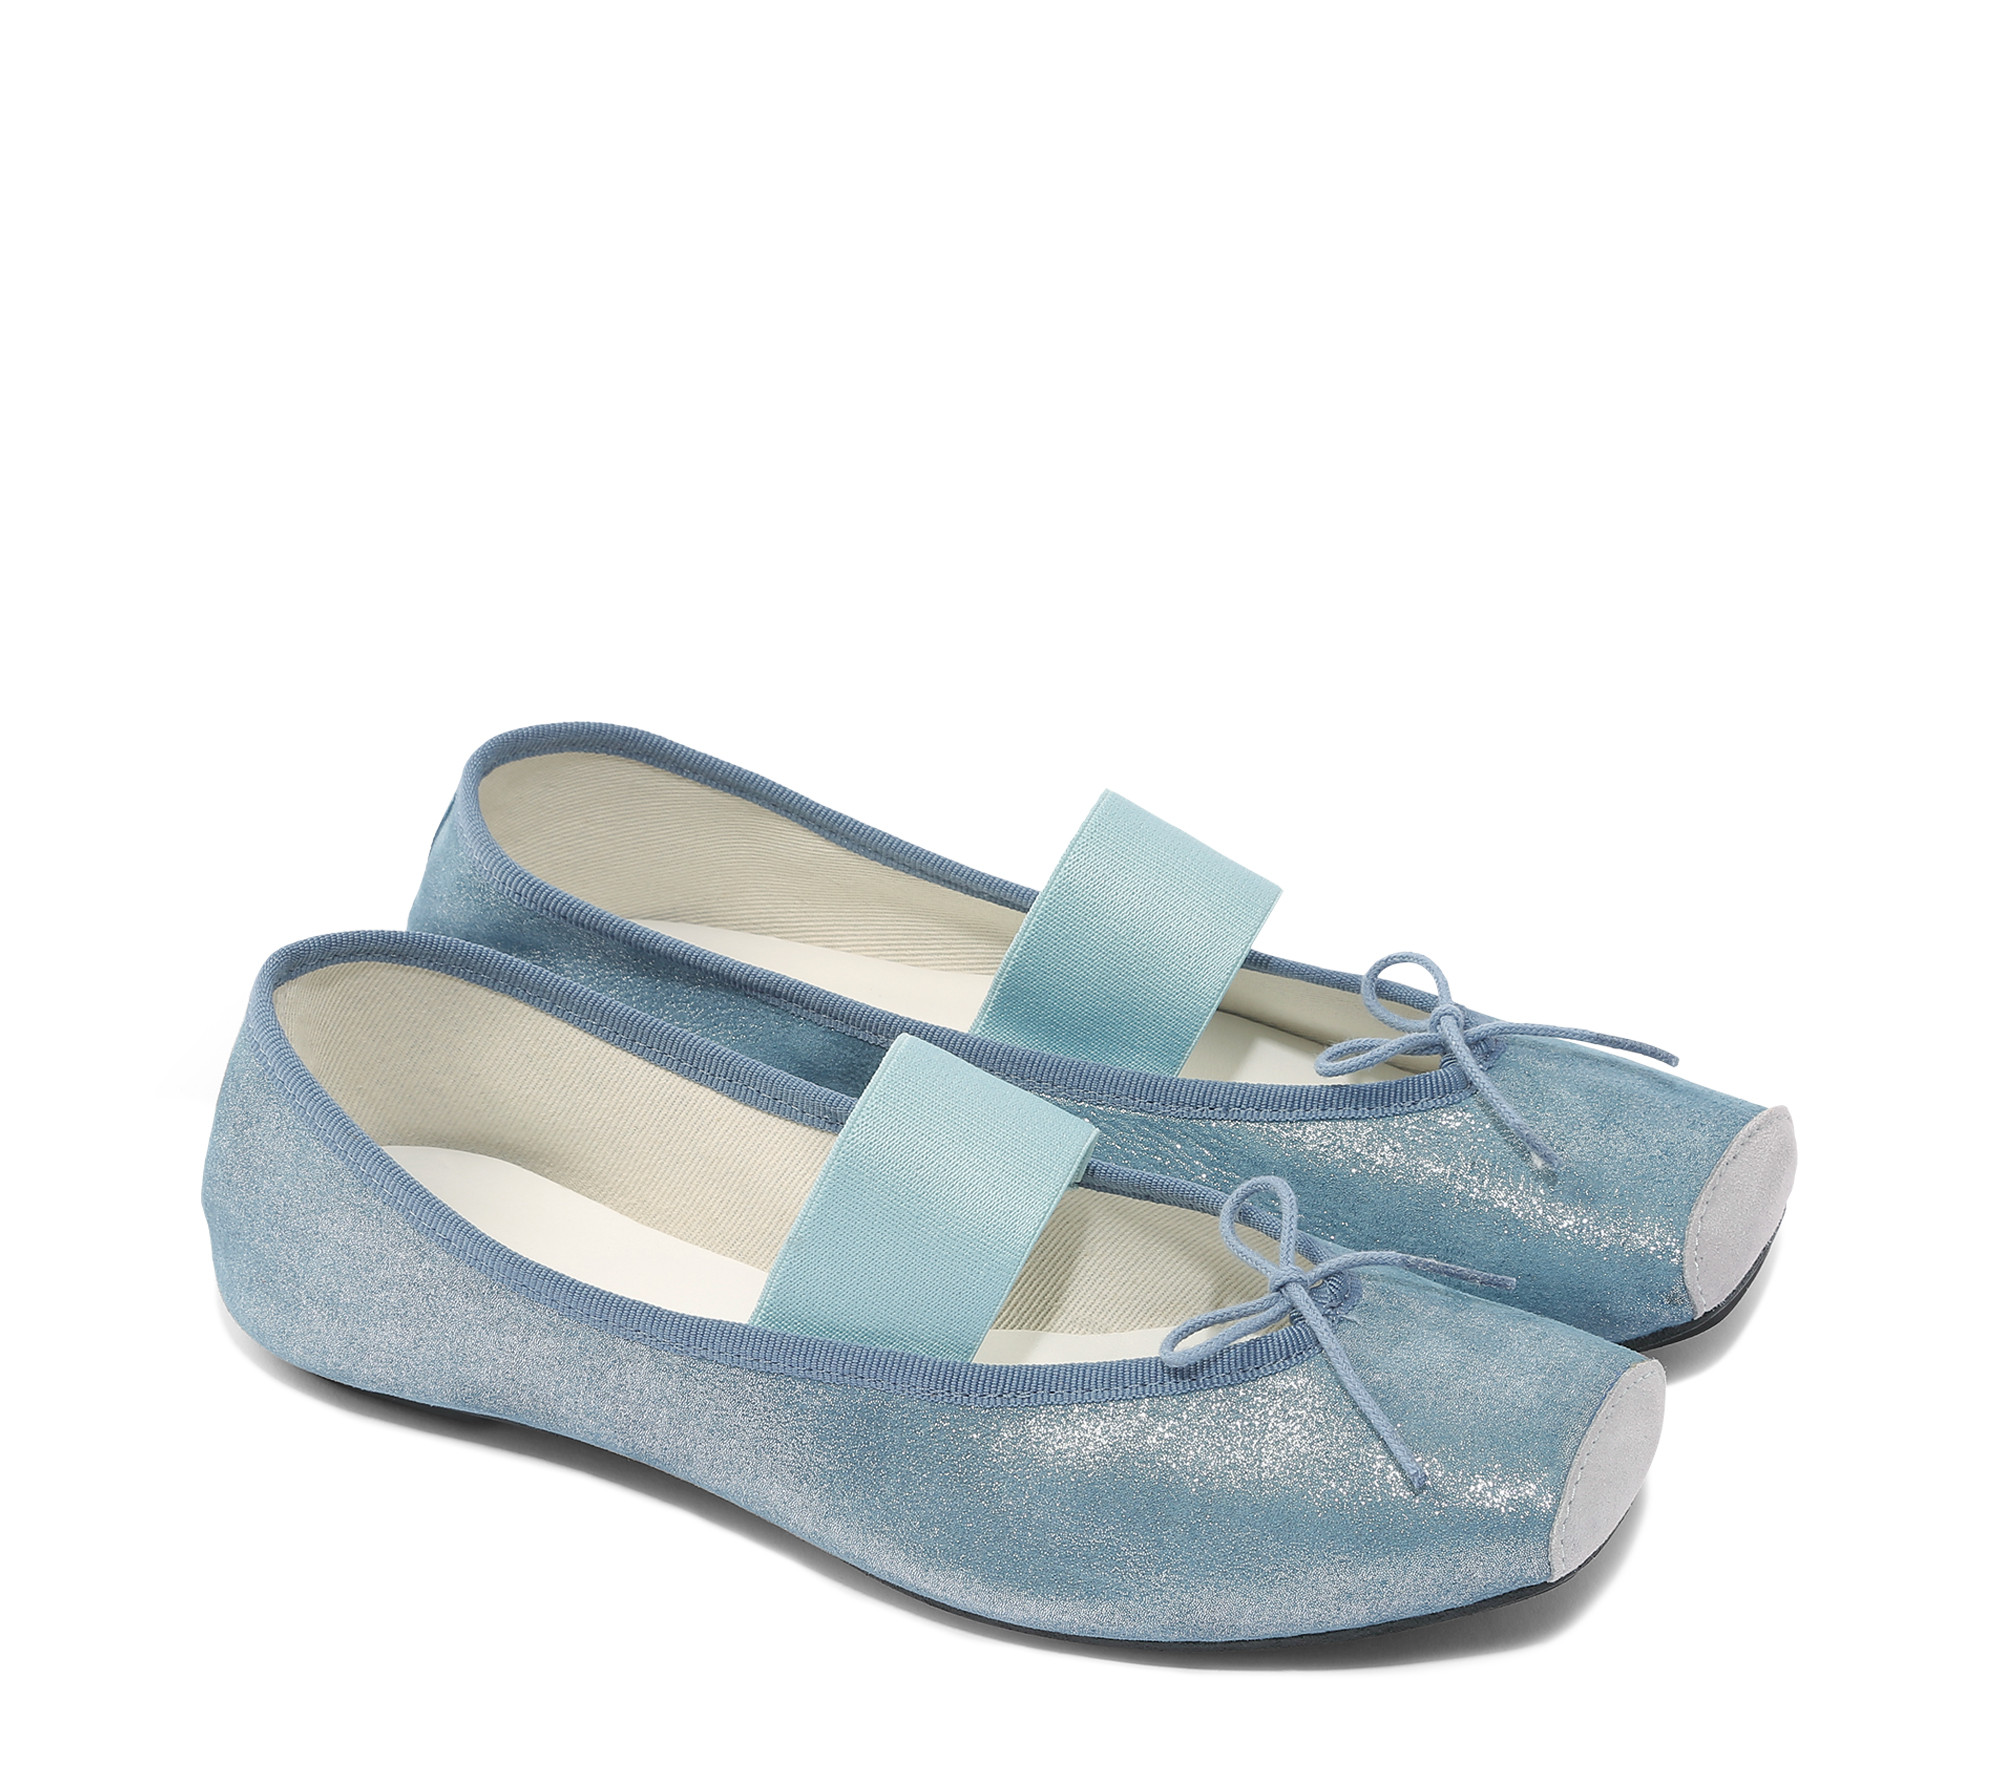 Woman Ballerinas   REPETTO Official   Free delivery for orders over €100 5a58fba5e0